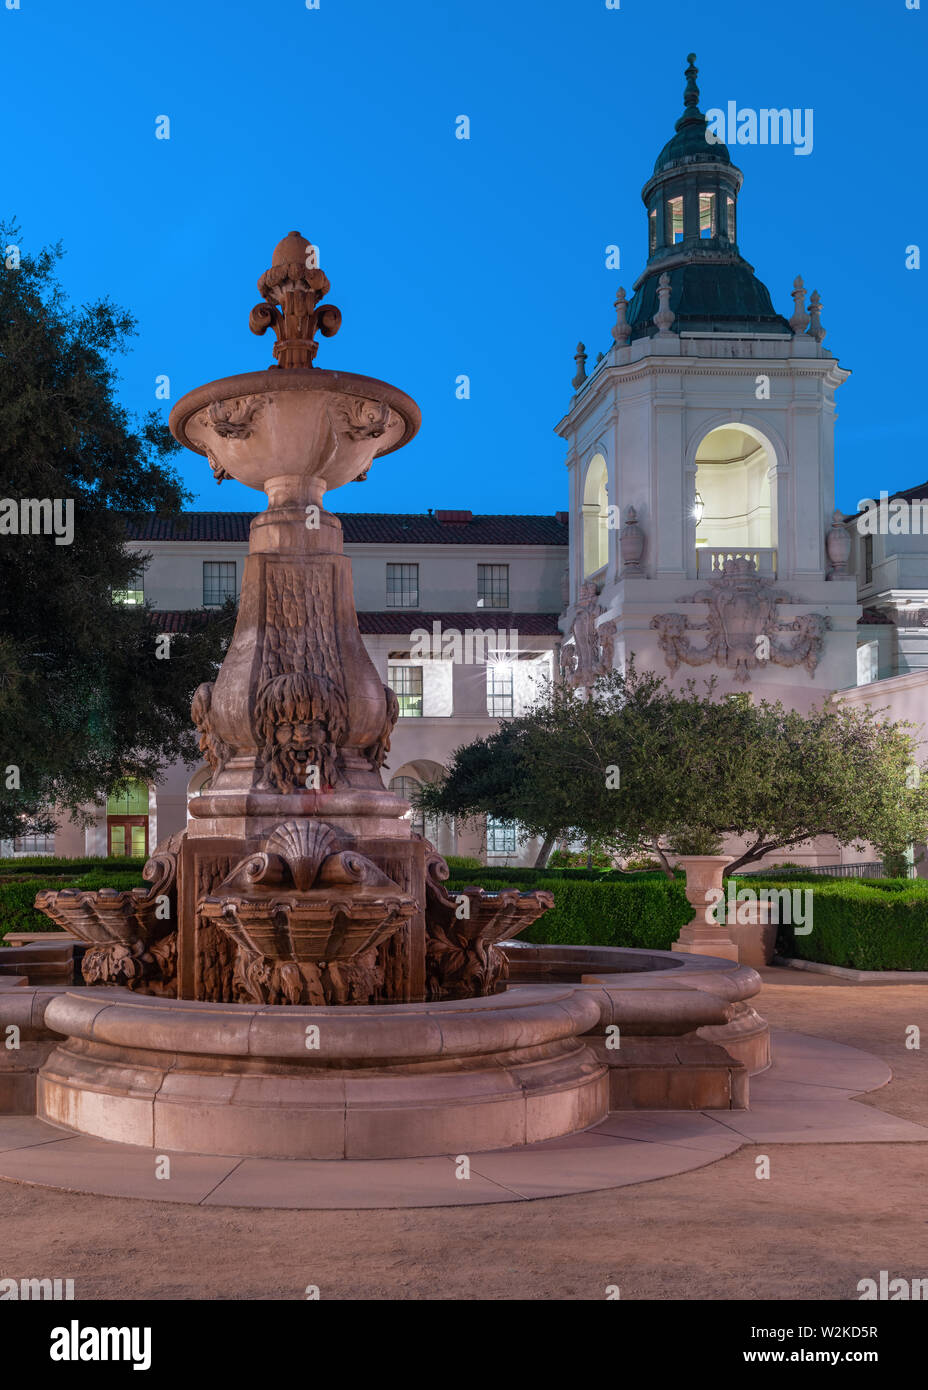 Pasadena City Hall courtyard showing the fountain and one of the smaller towes.. Stock Photo